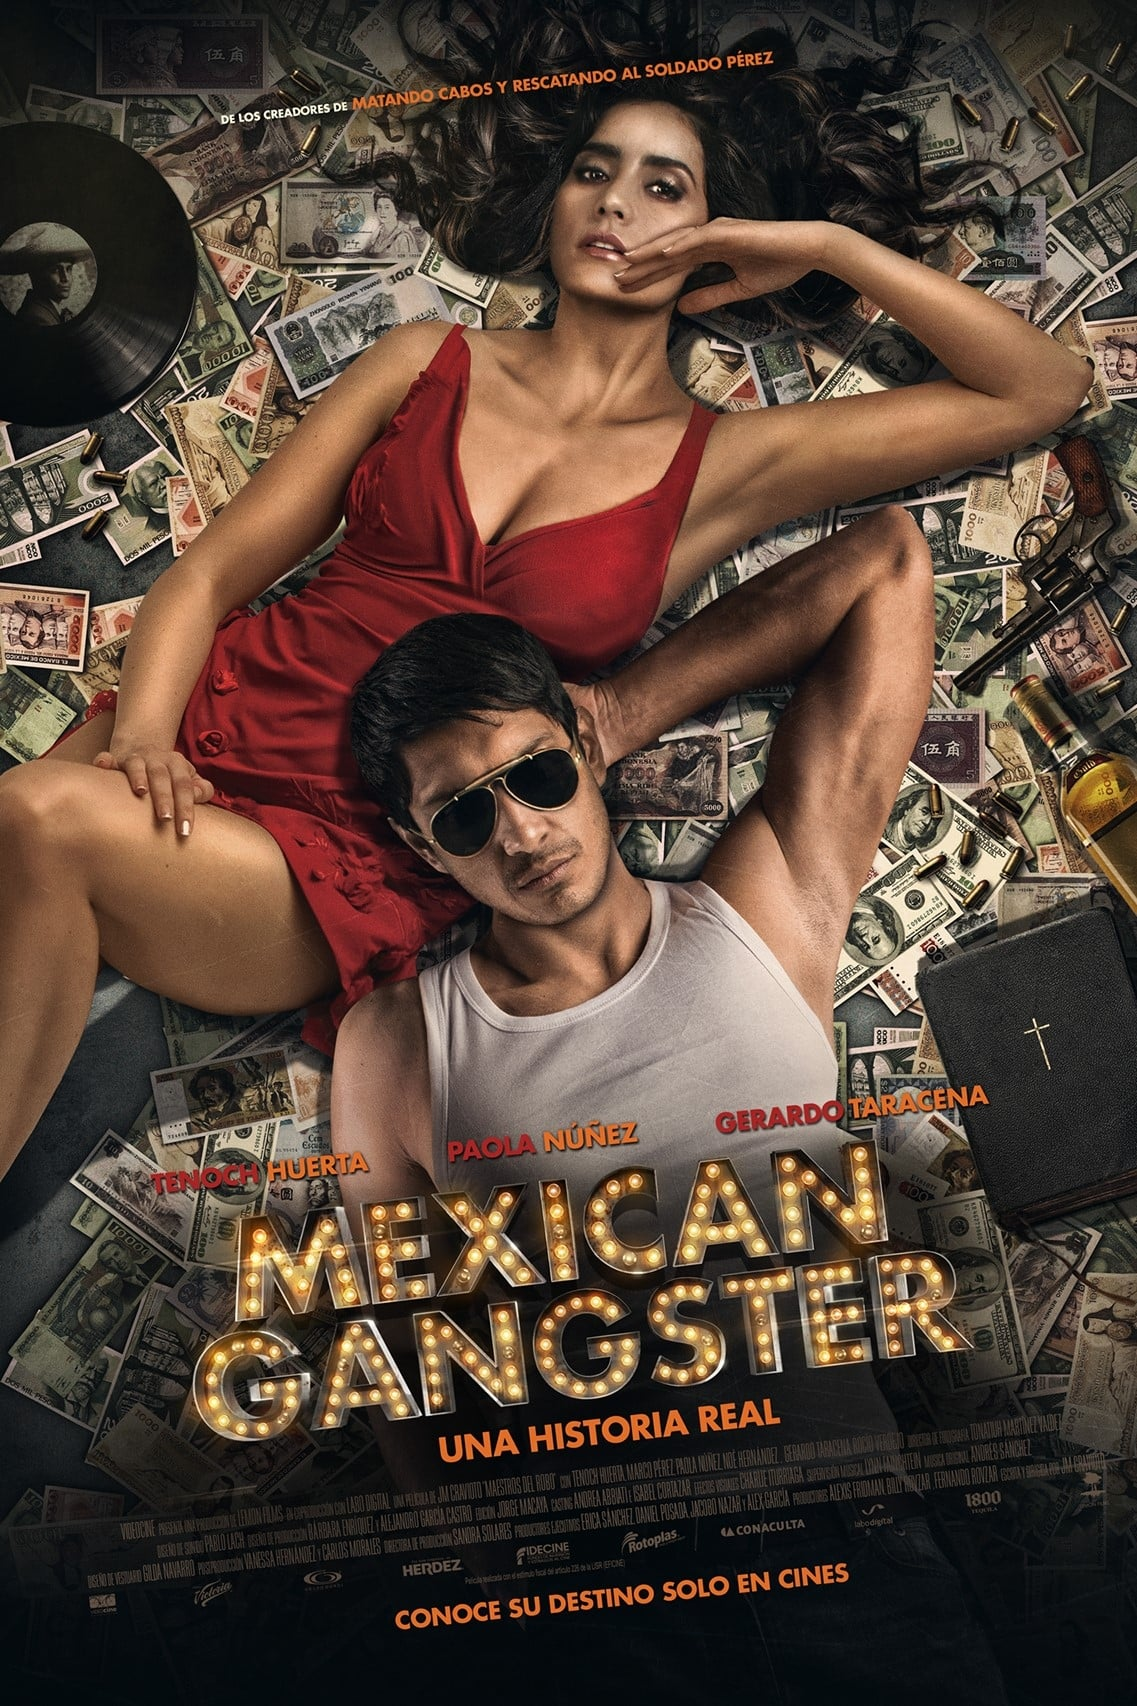 Mexican Gangster (2014)